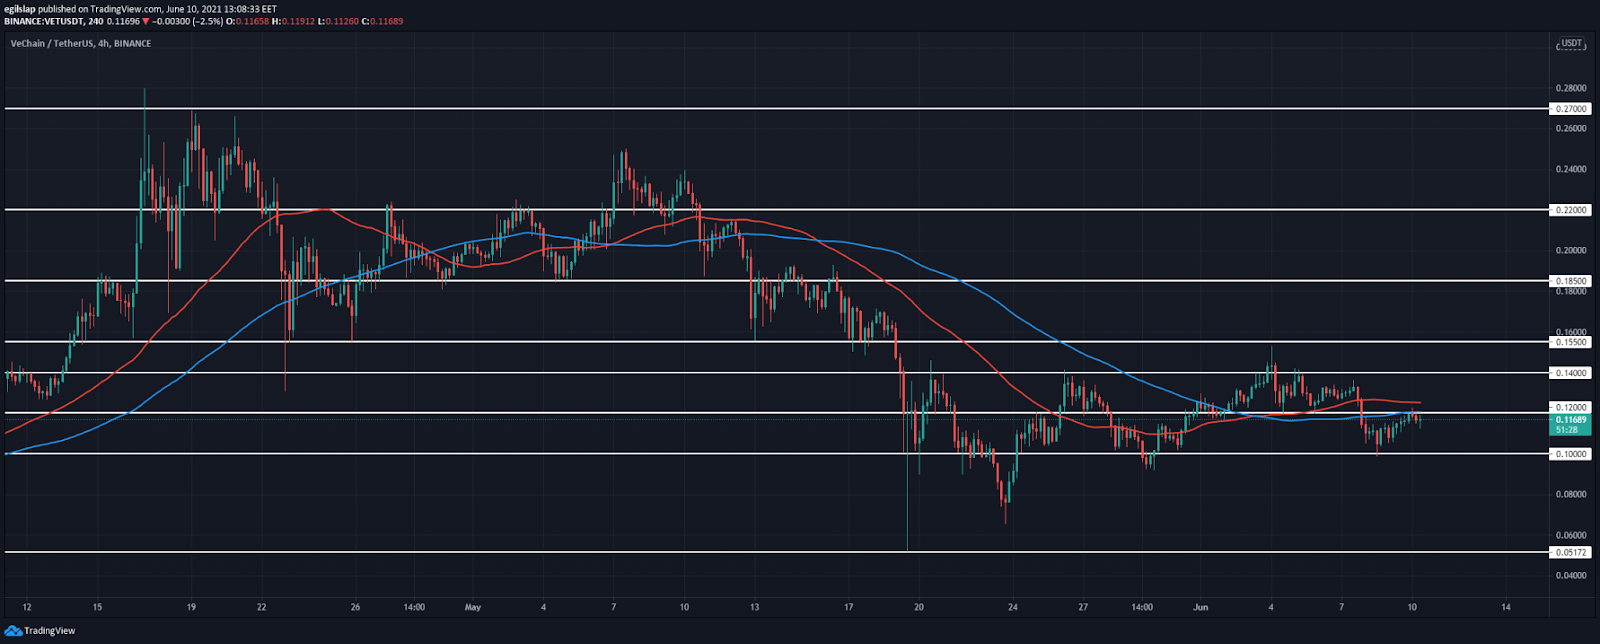 VeChain price analysis: VeChain established a higher low at $0.10, prepares to push higher again?